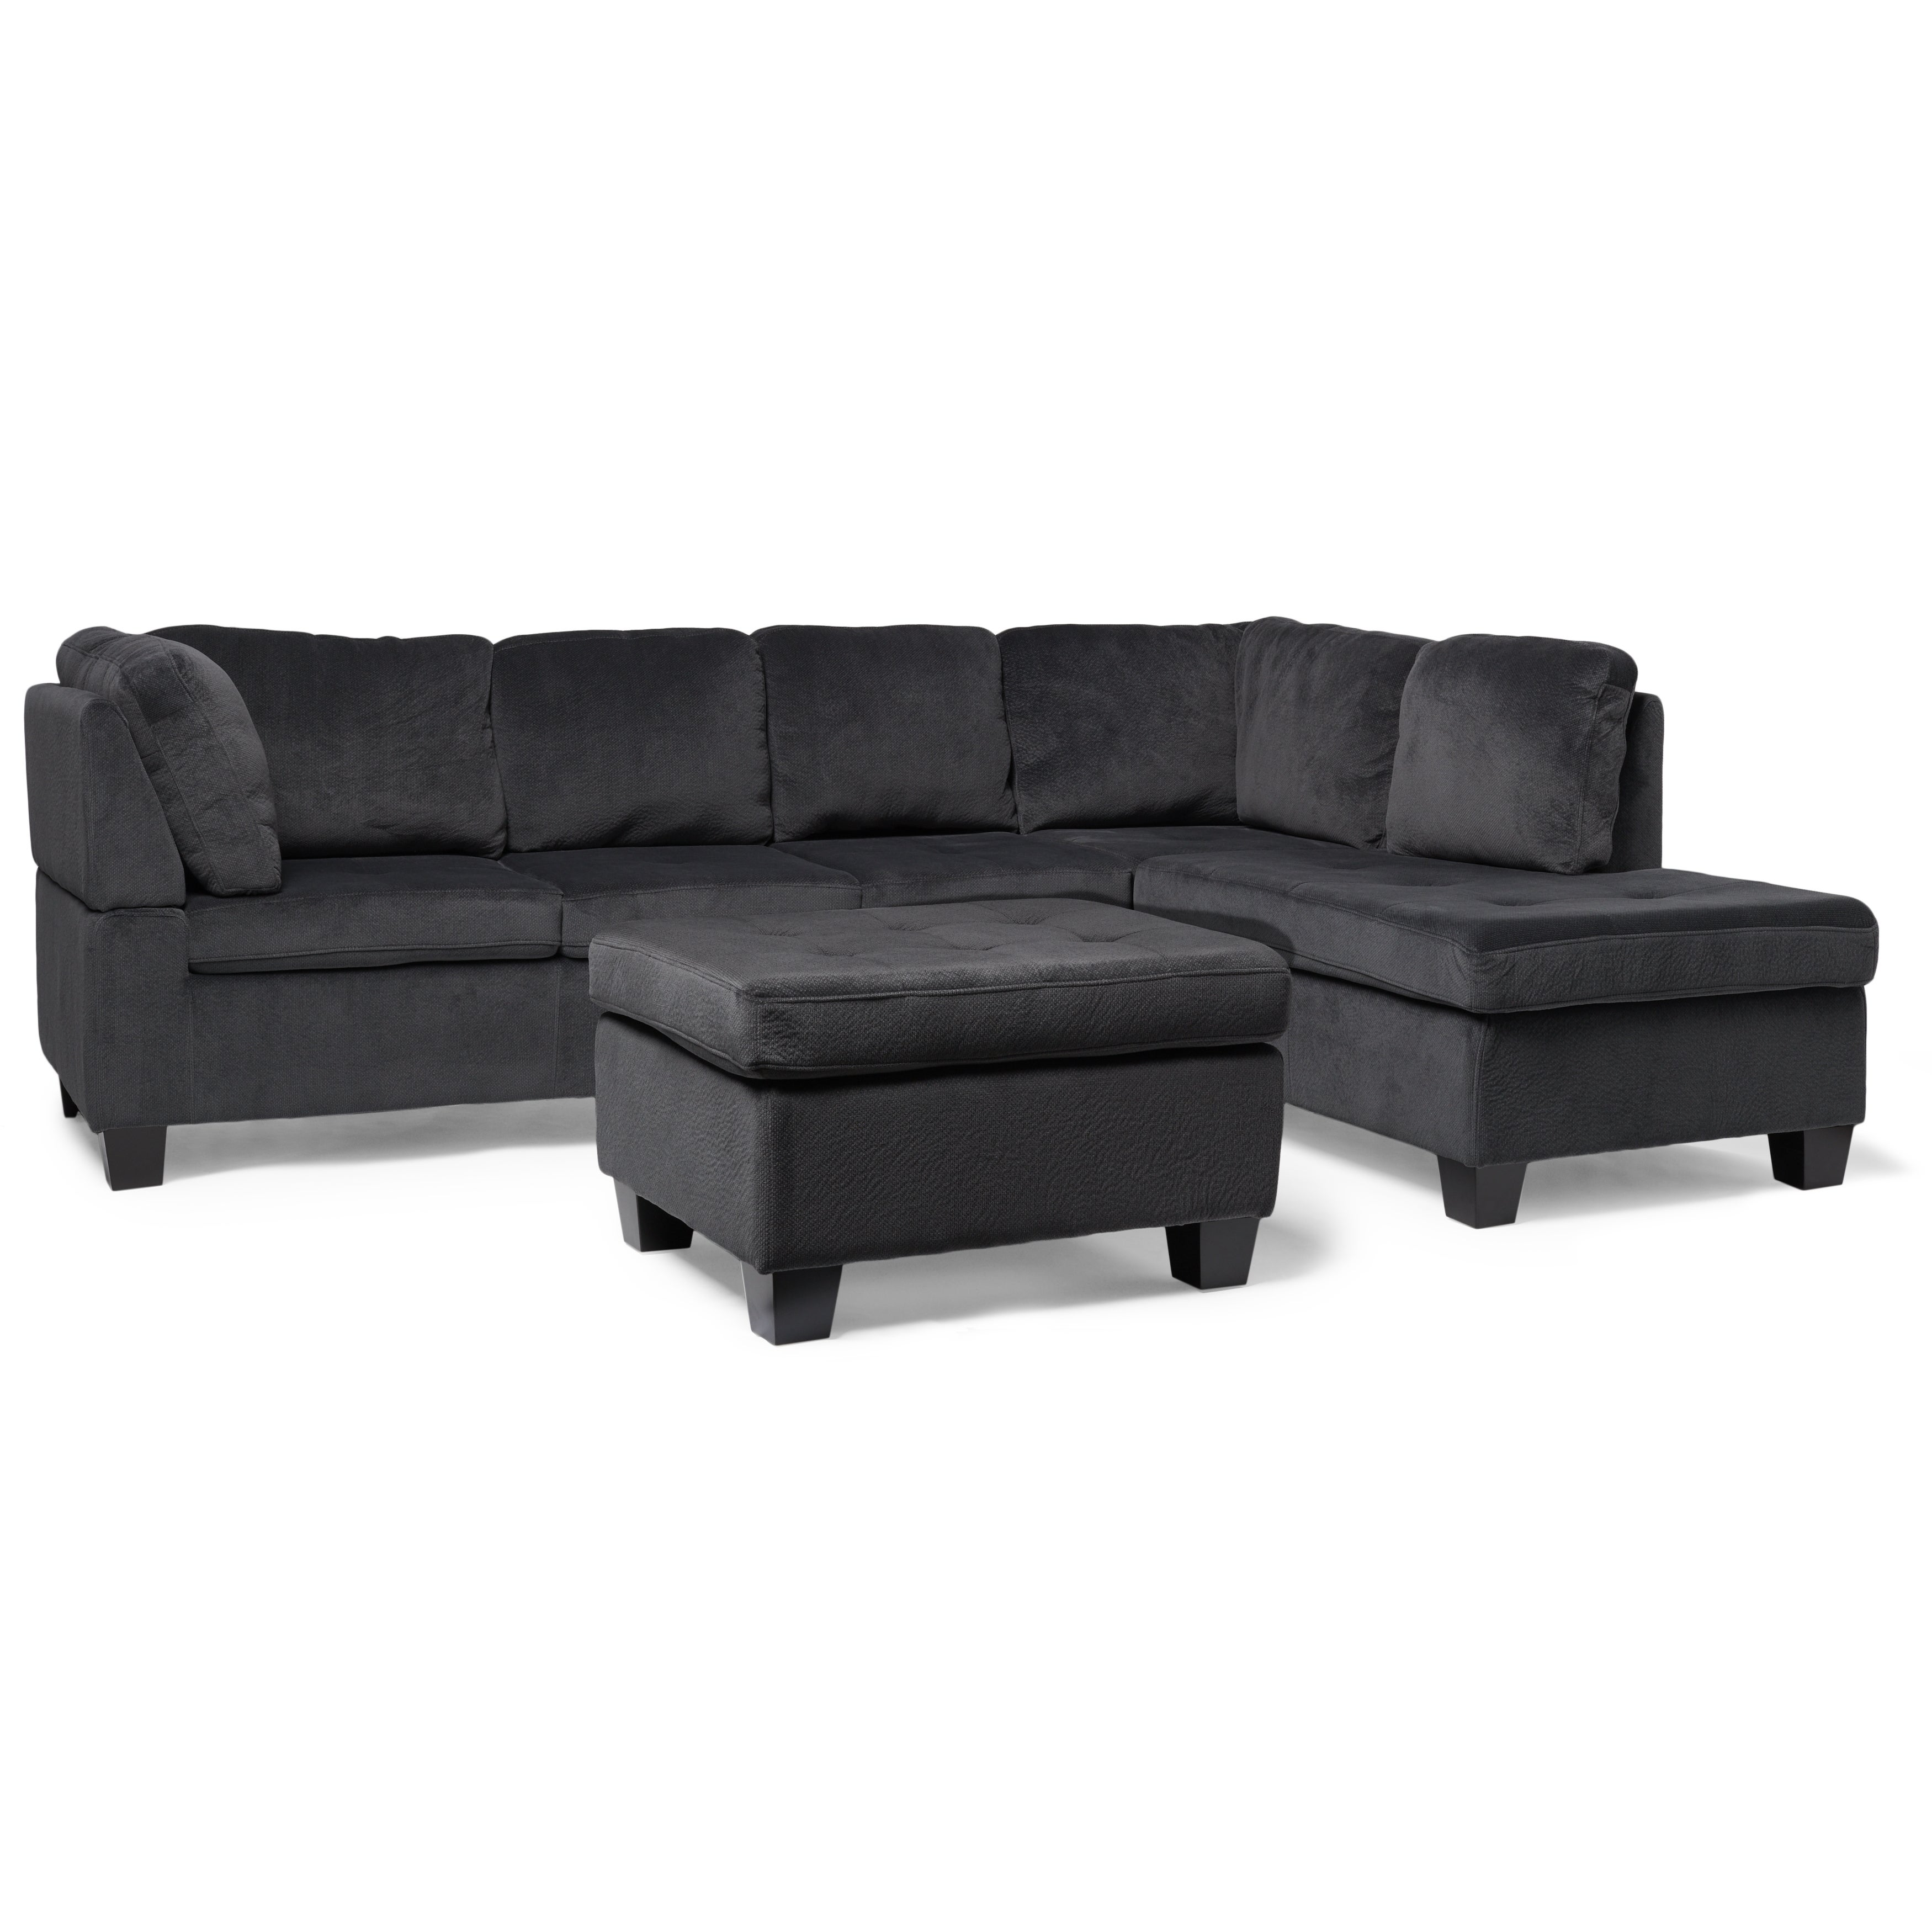 Canterbury 3 Piece Fabric Sectional Sofa Set By Christopher Knight Home  (Option: Charcoal